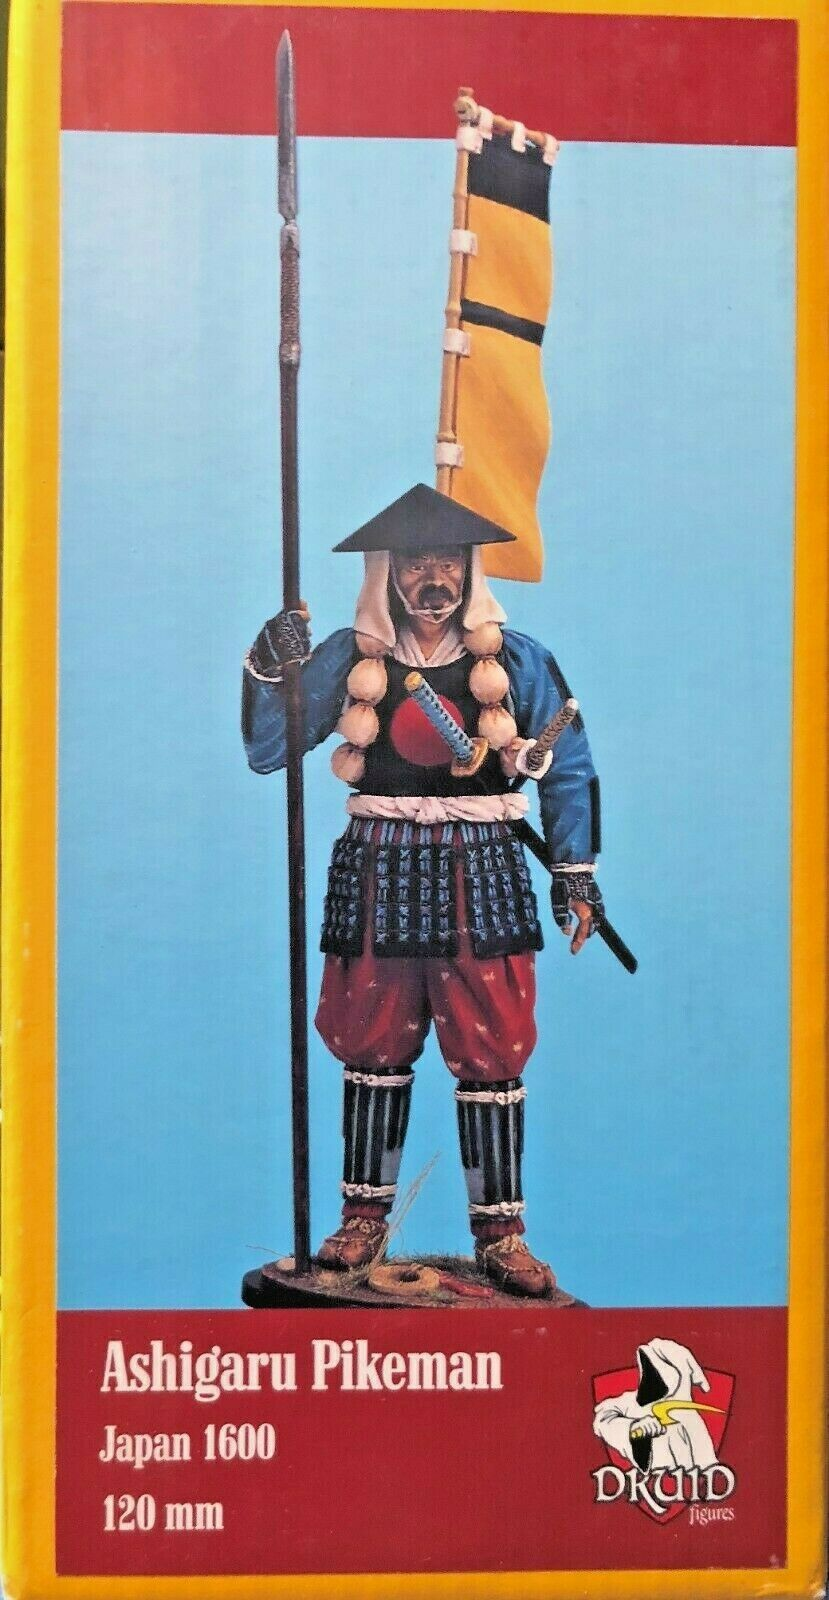 1 16 120MM RESIN FIGURE DRUID FIGURES ASHIGARU PIKEMAN. NEW.